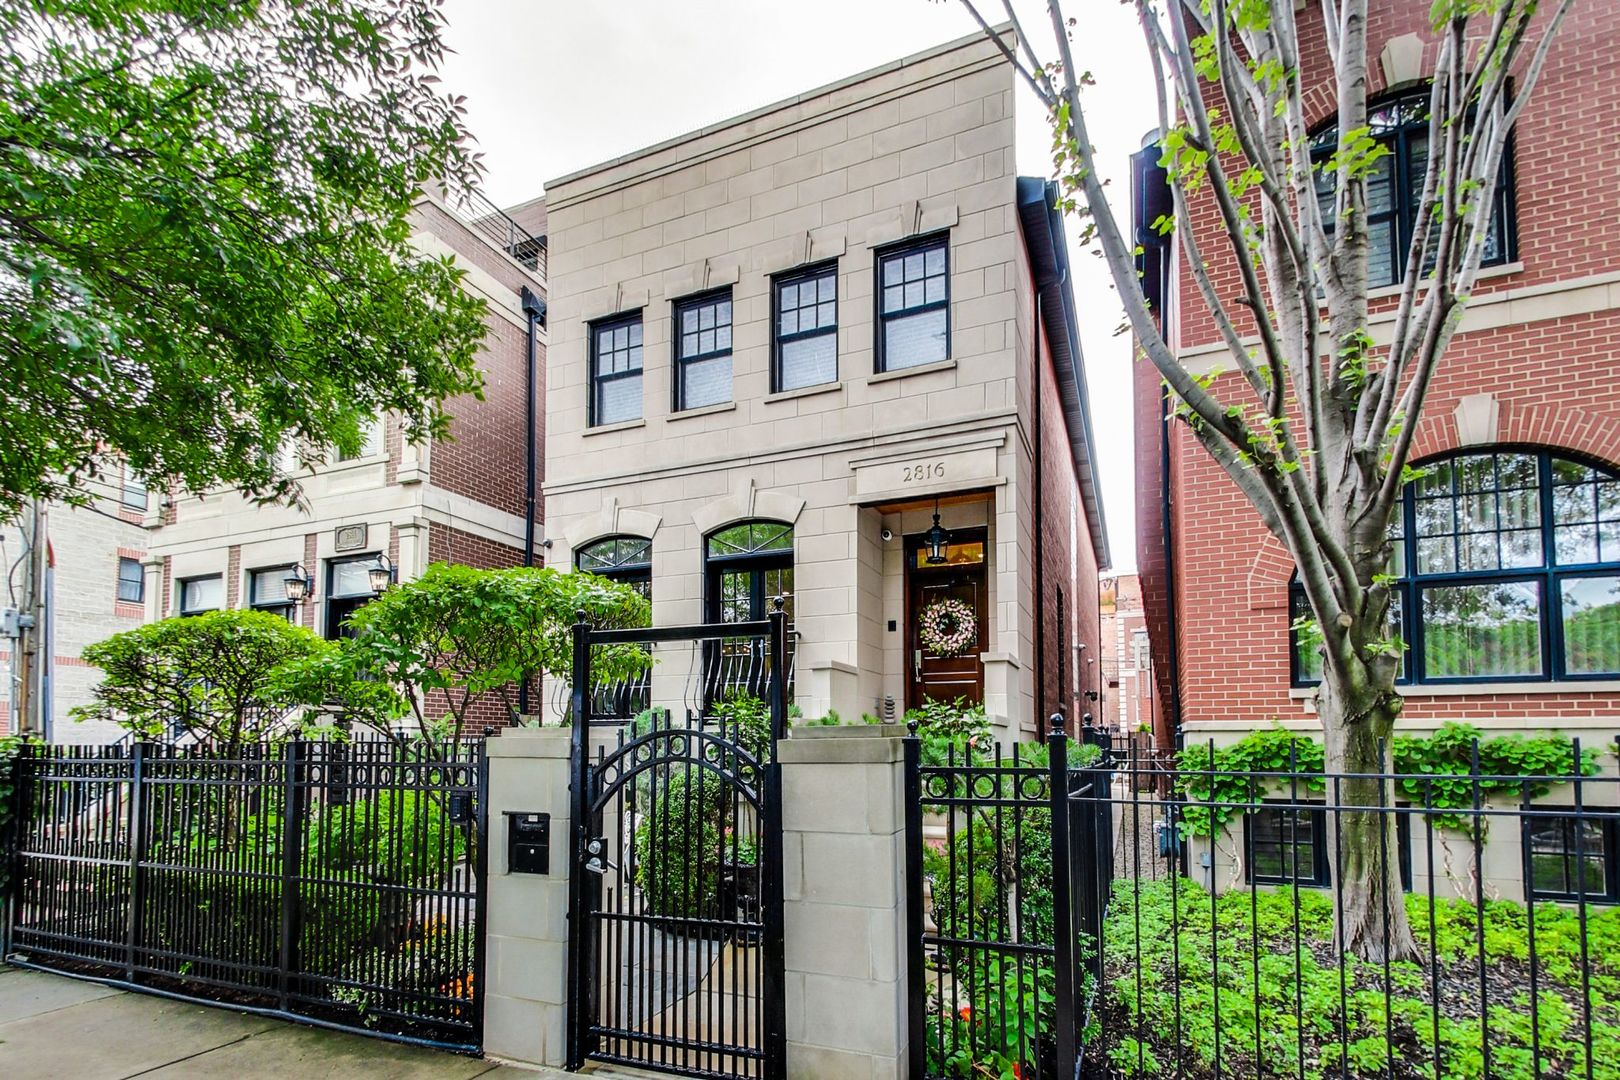 Property for sale at 2816 North Paulina Street, CHICAGO,  Il 60657